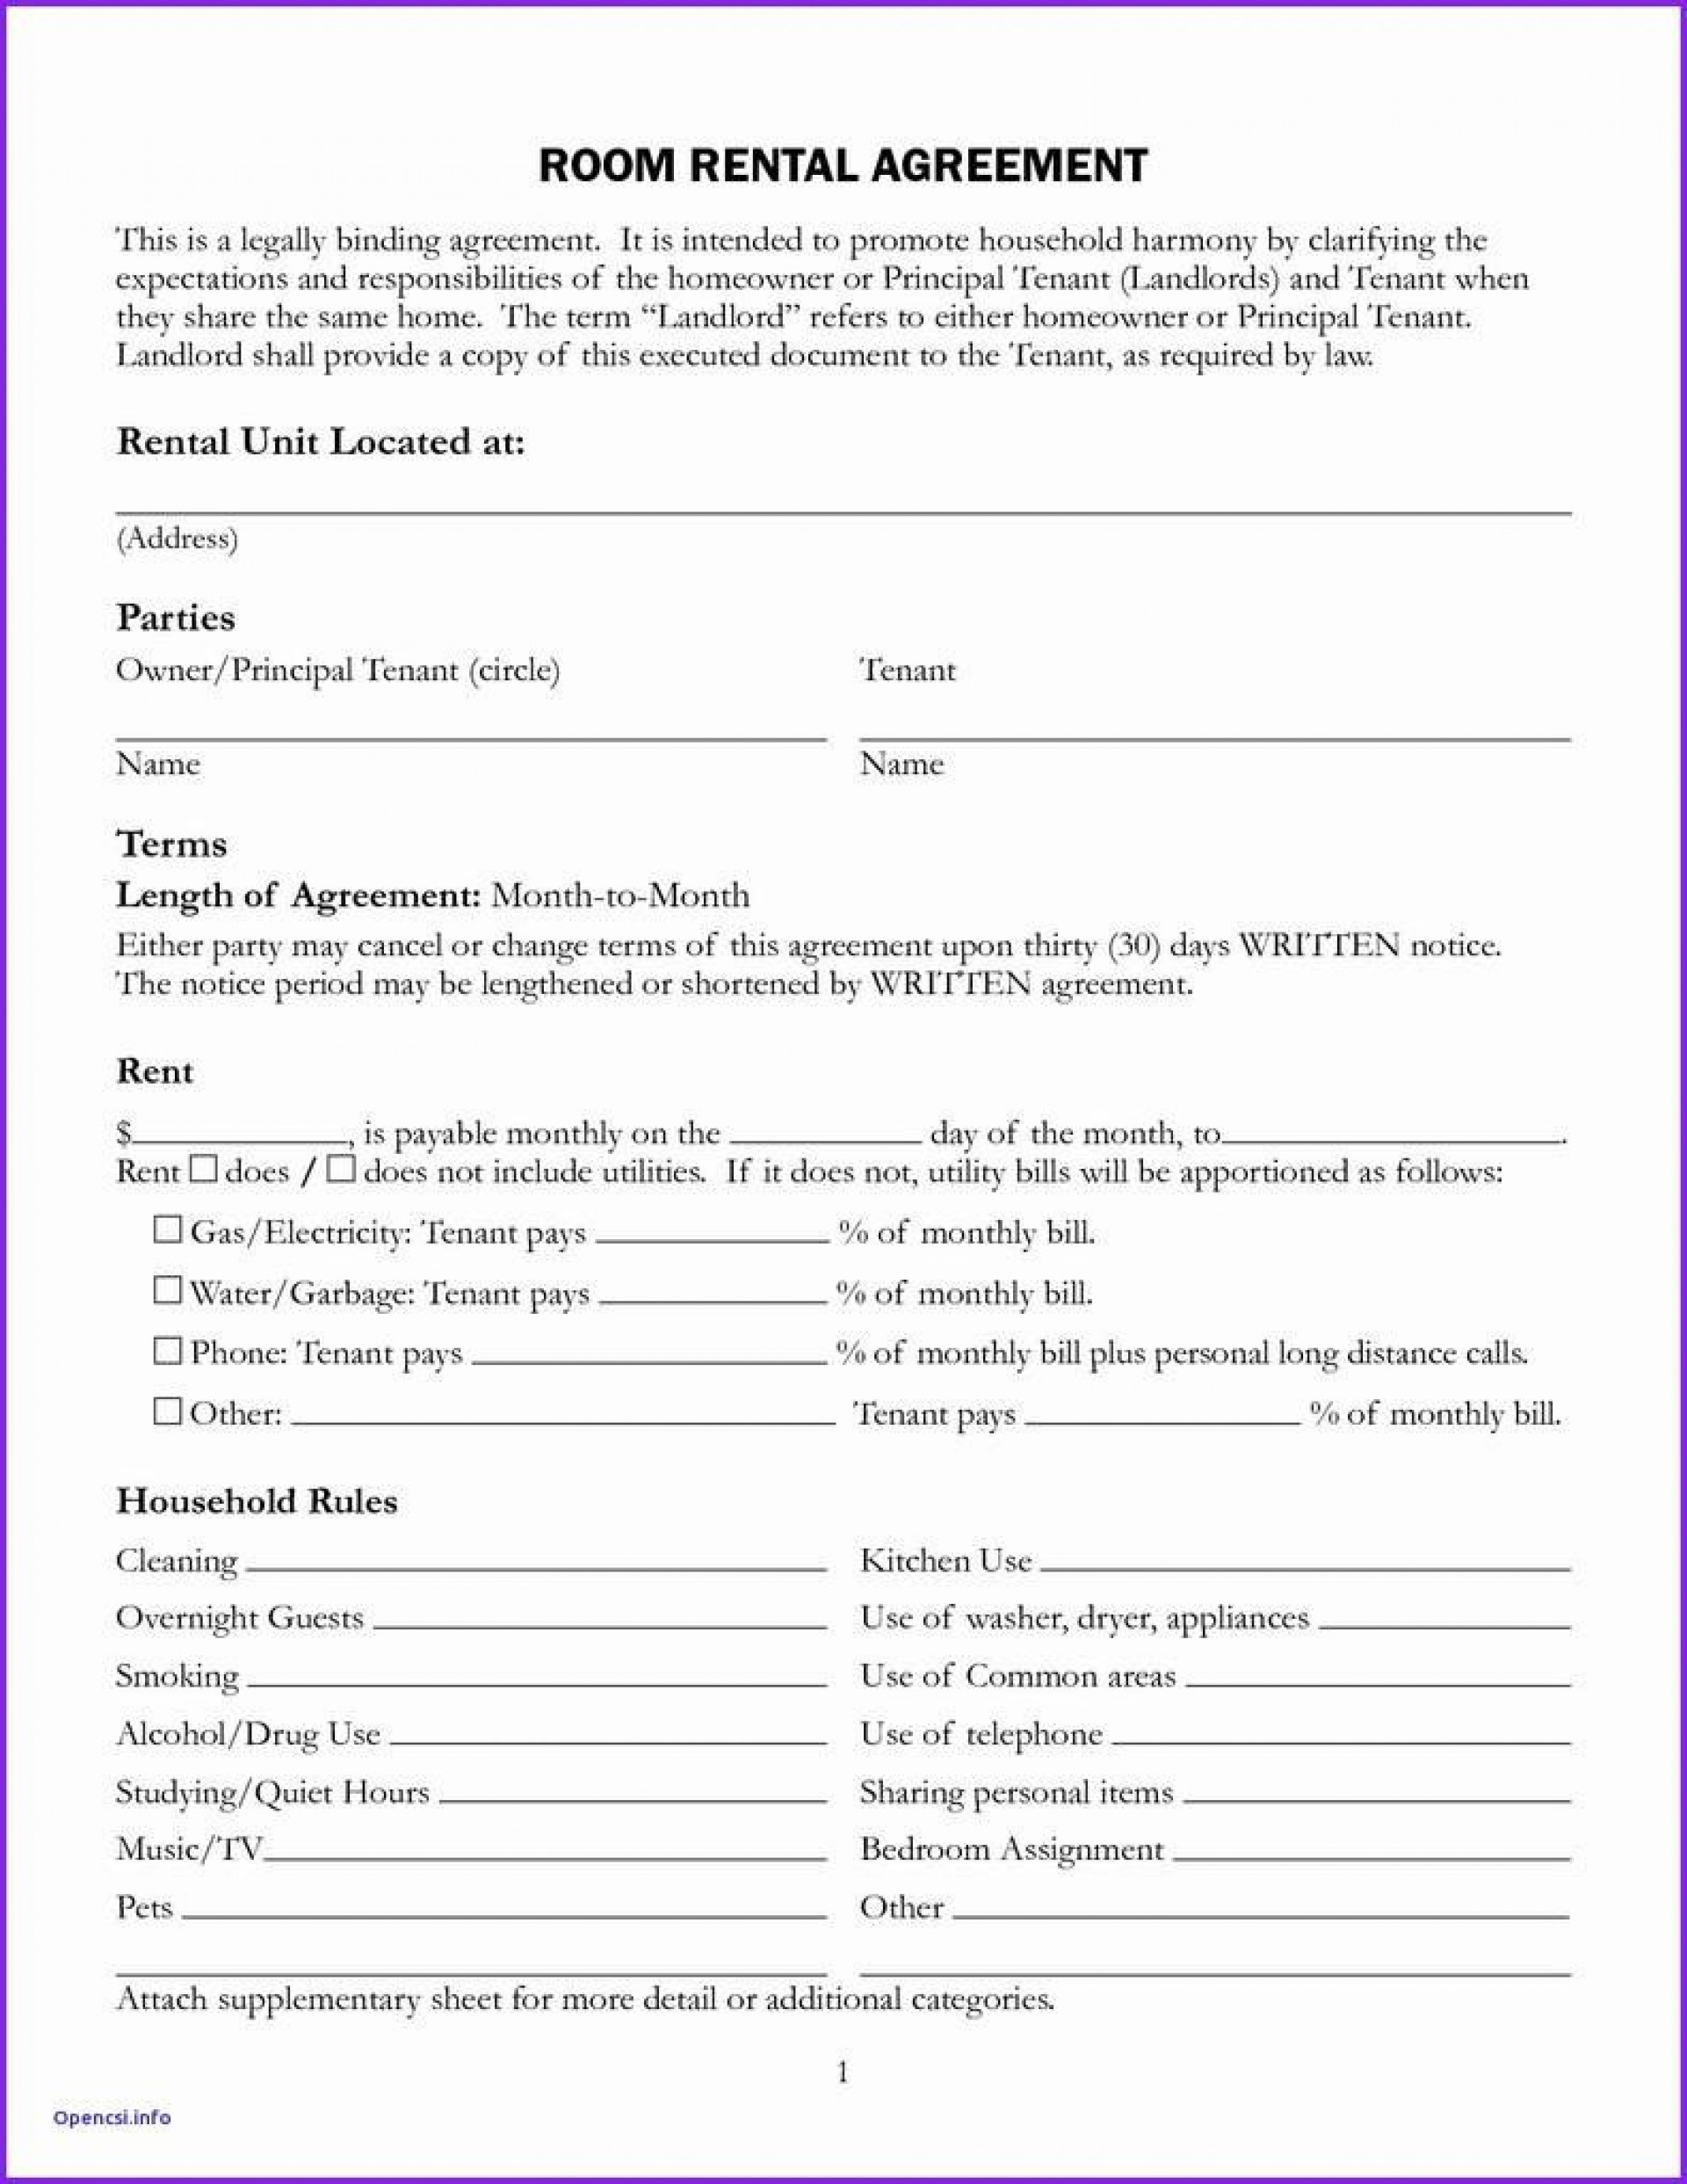 004 Archaicawful Simple Room Rental Agreement Template Design  Free1920